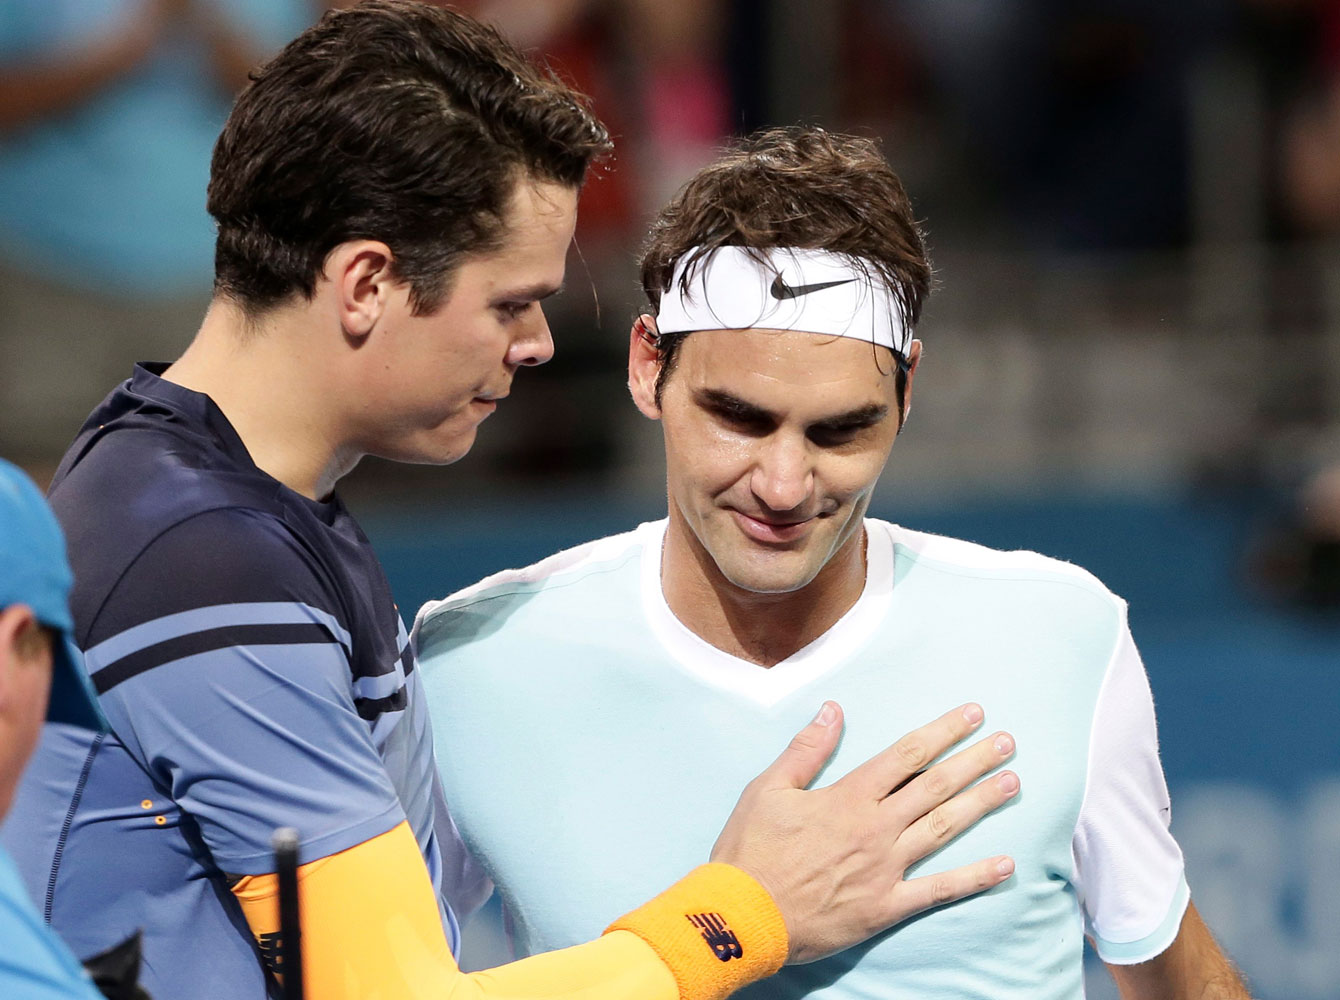 Milos Raonic consoles Roger Federer following the Brisbane International final where the Canadian prevailed on January 10, 2016.